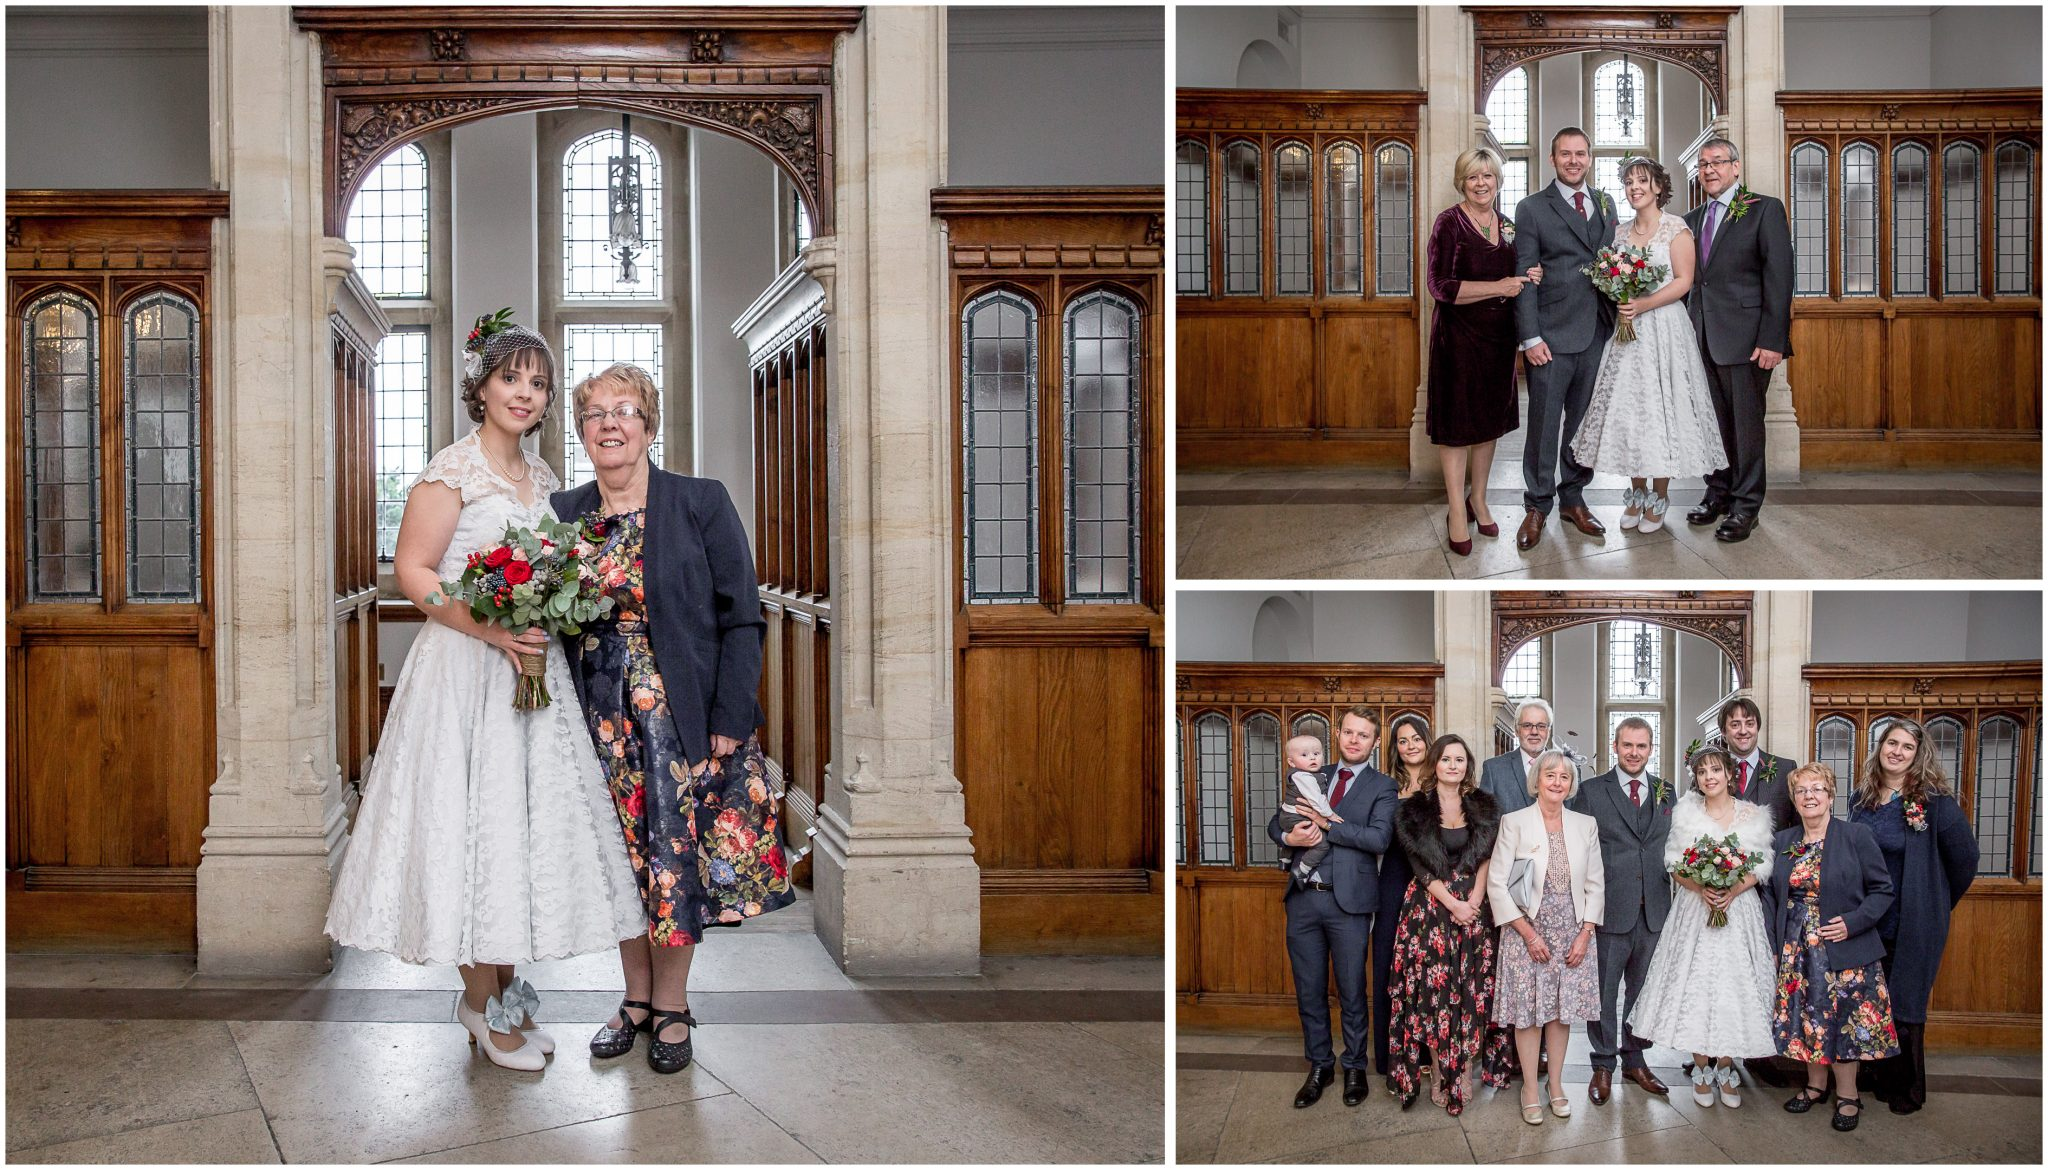 Castle Room Winchester wedding photography group photos inside registry office